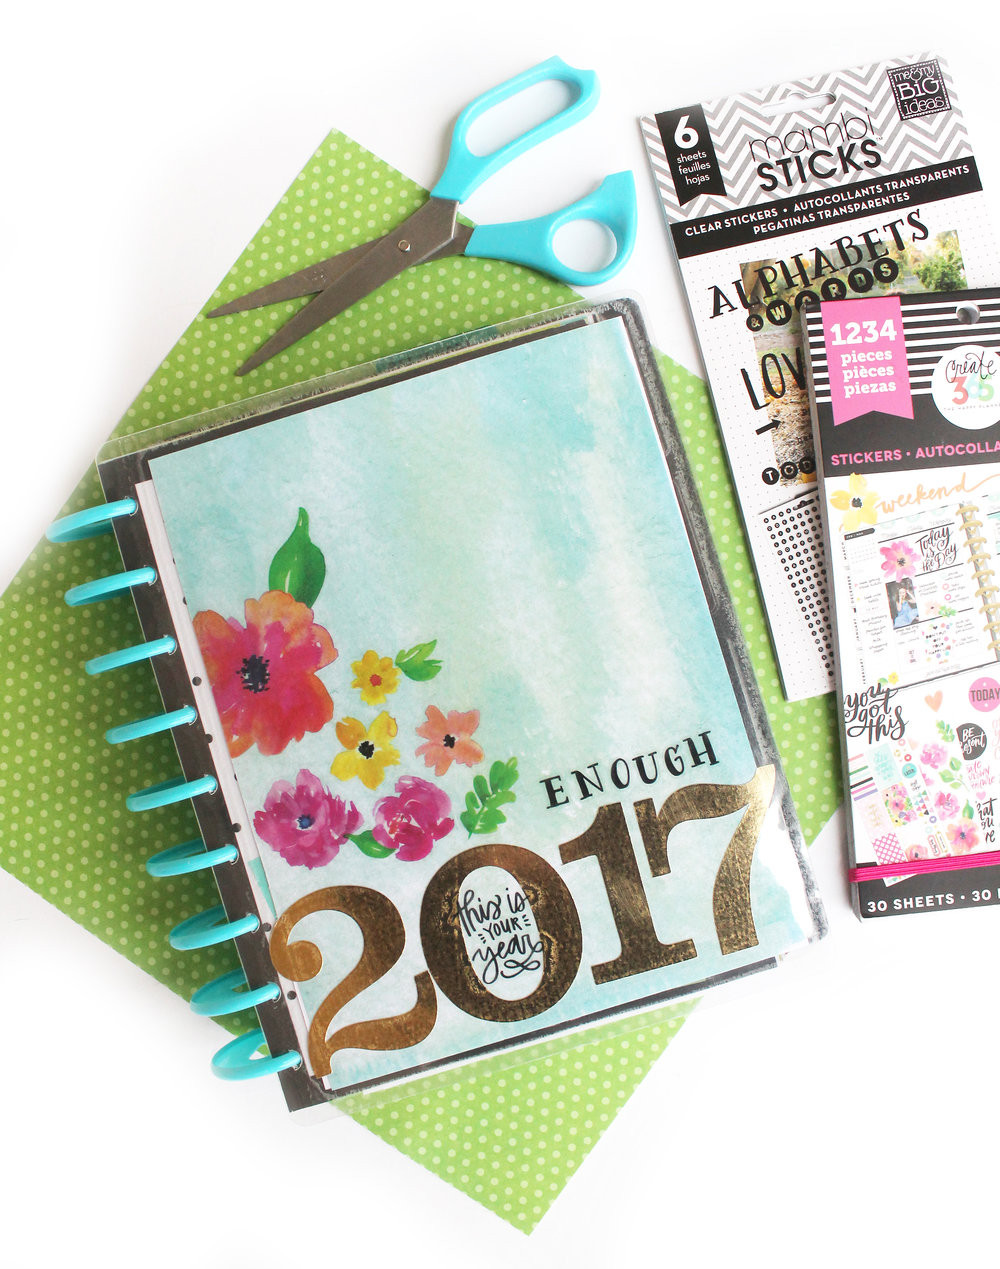 DIY Planner Cover  DIY 2017 Vision Board w The Happy Planner custom cover